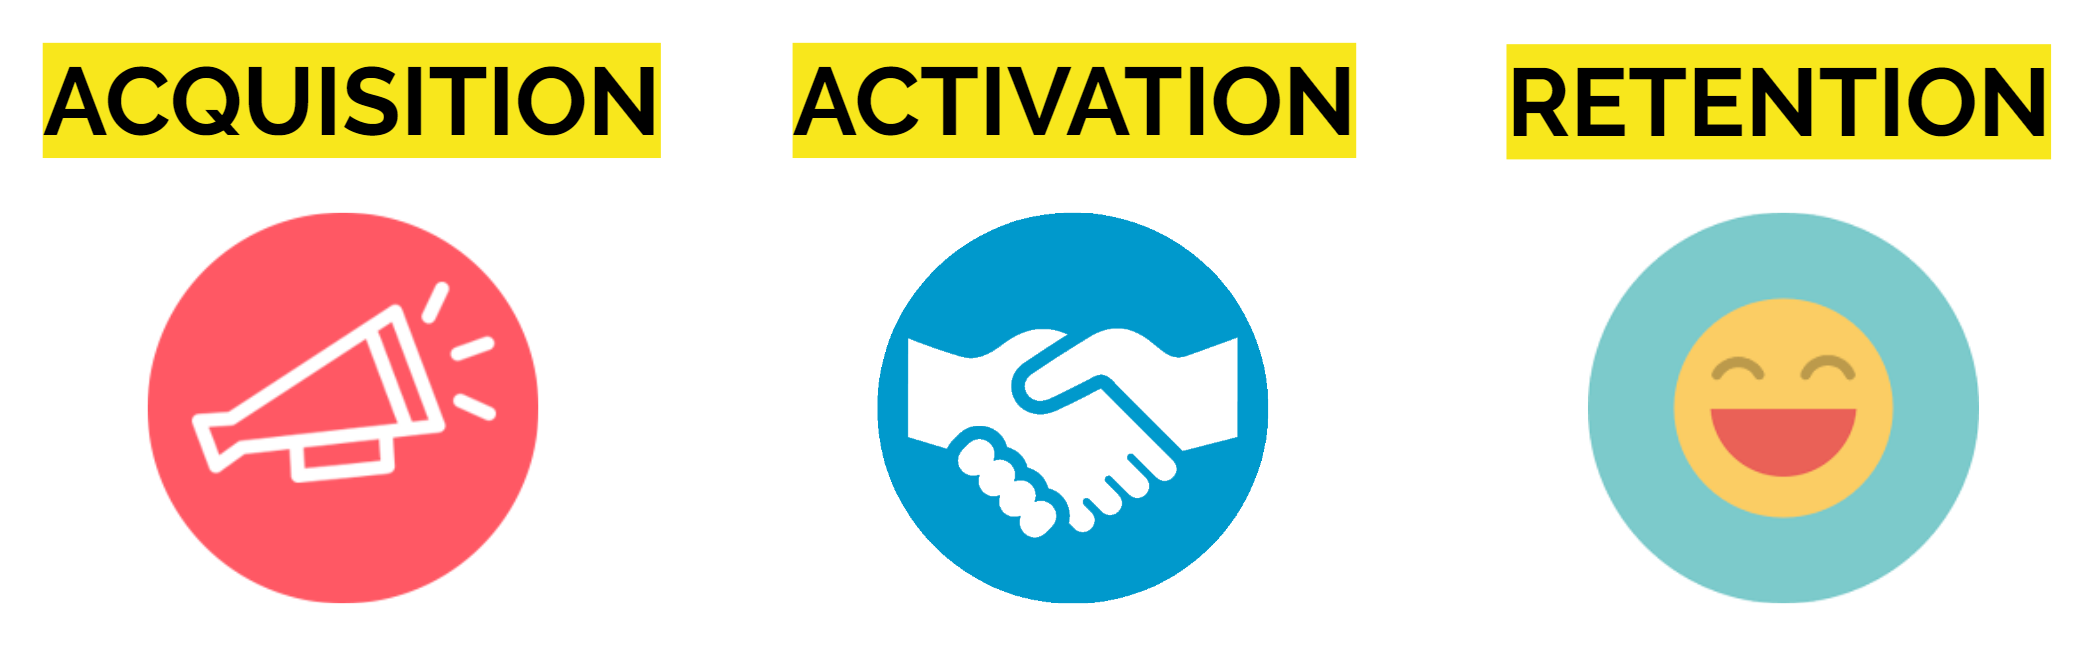 Picture showing acqusition, activation and retention